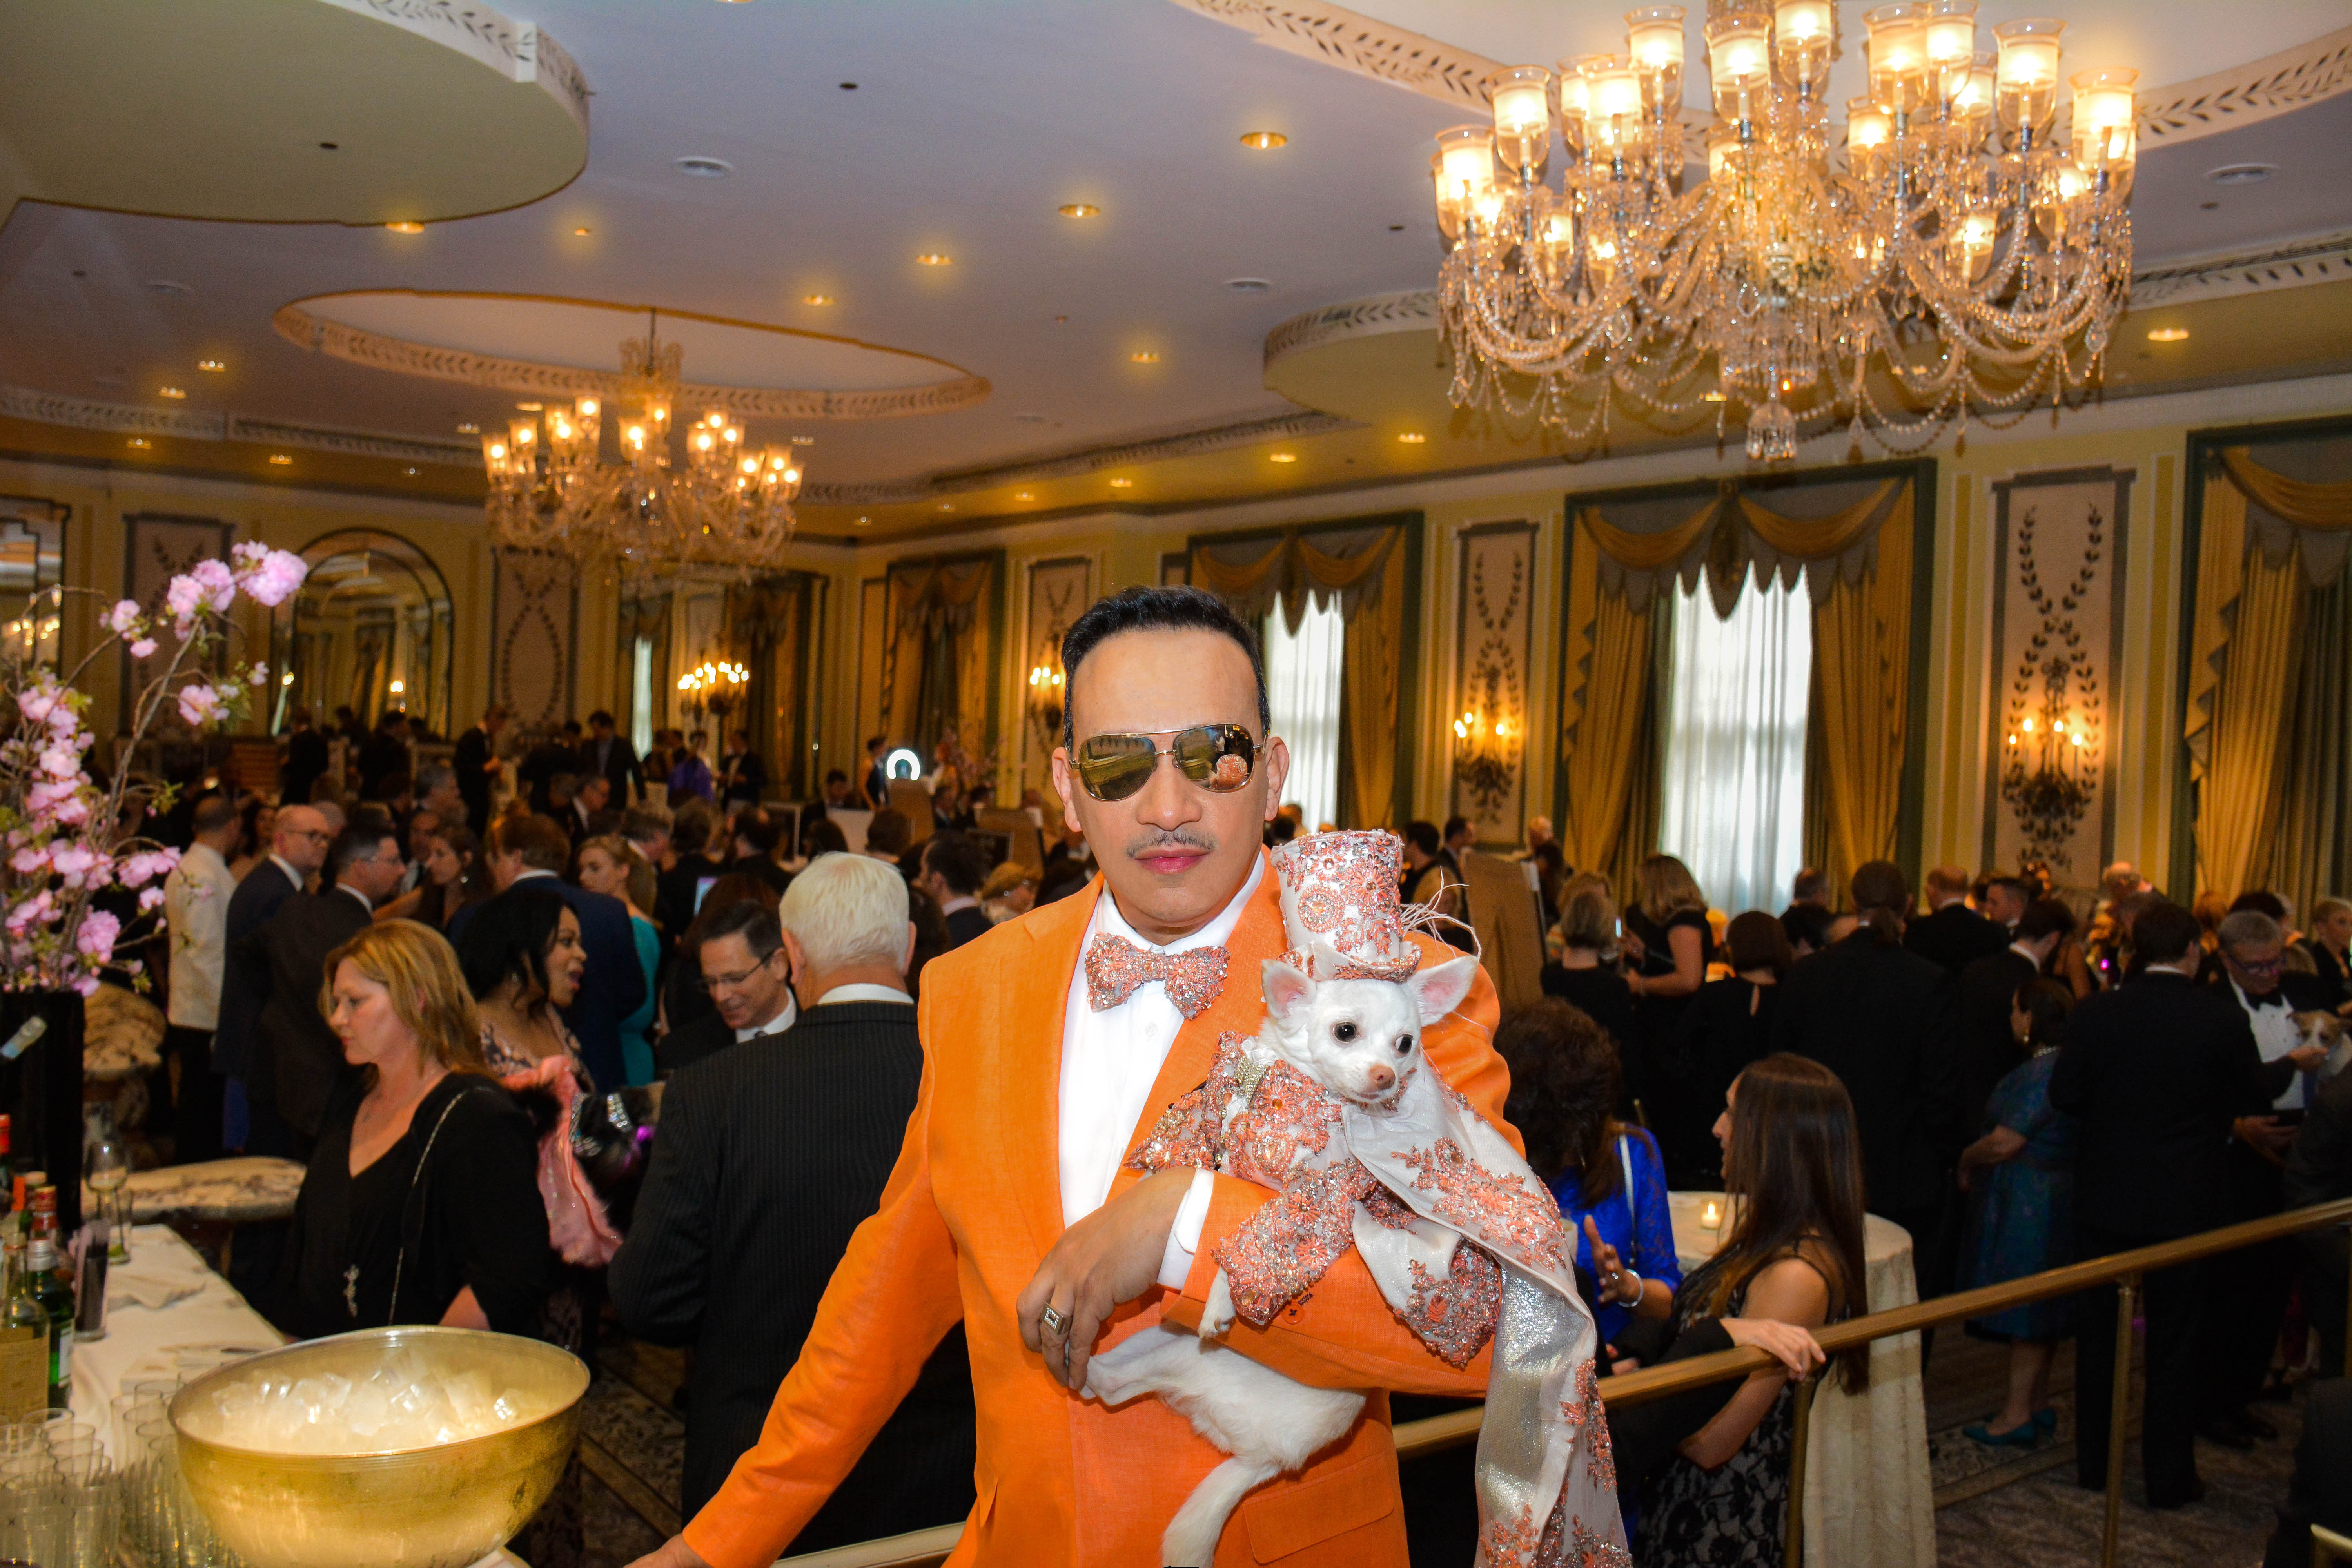 Anthony rubio anthony rubio designs dog fashion for The pierre hotel in new york city